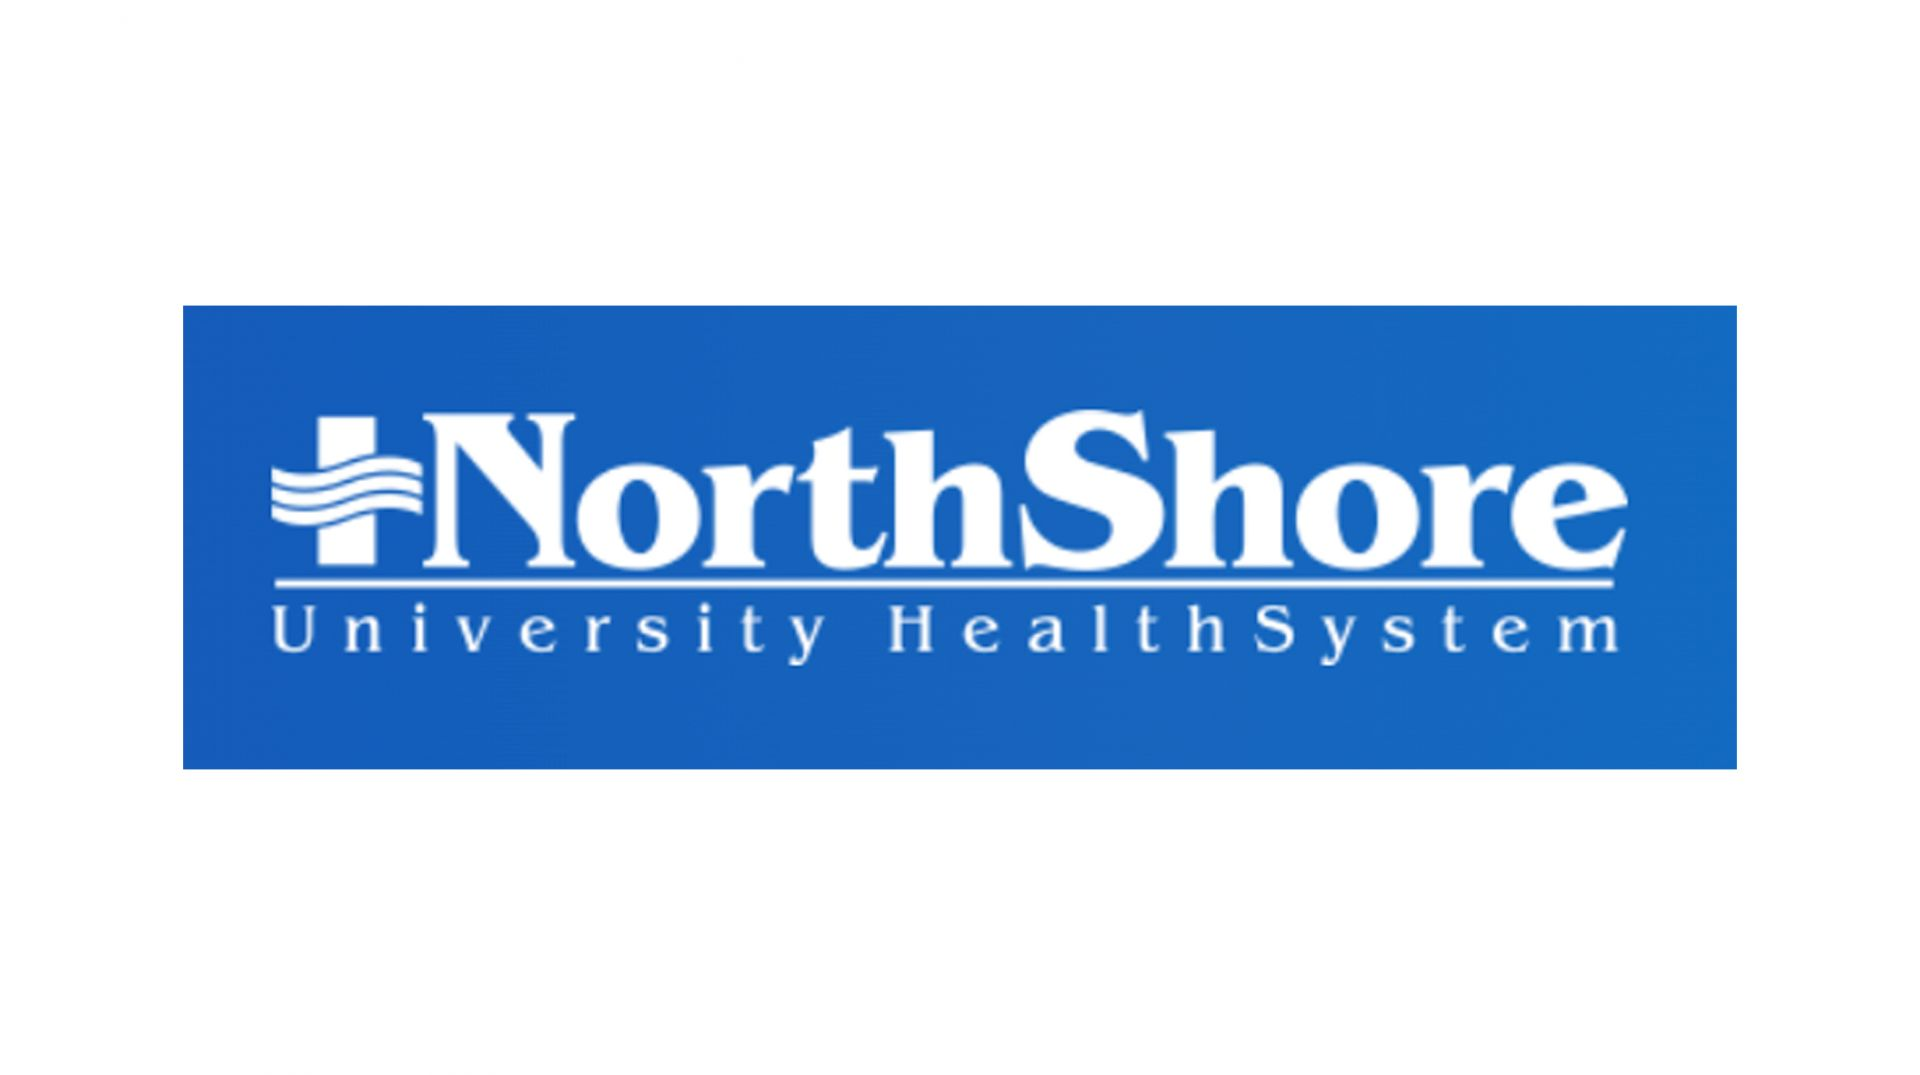 Northshore University Healthsystem Denver Pride